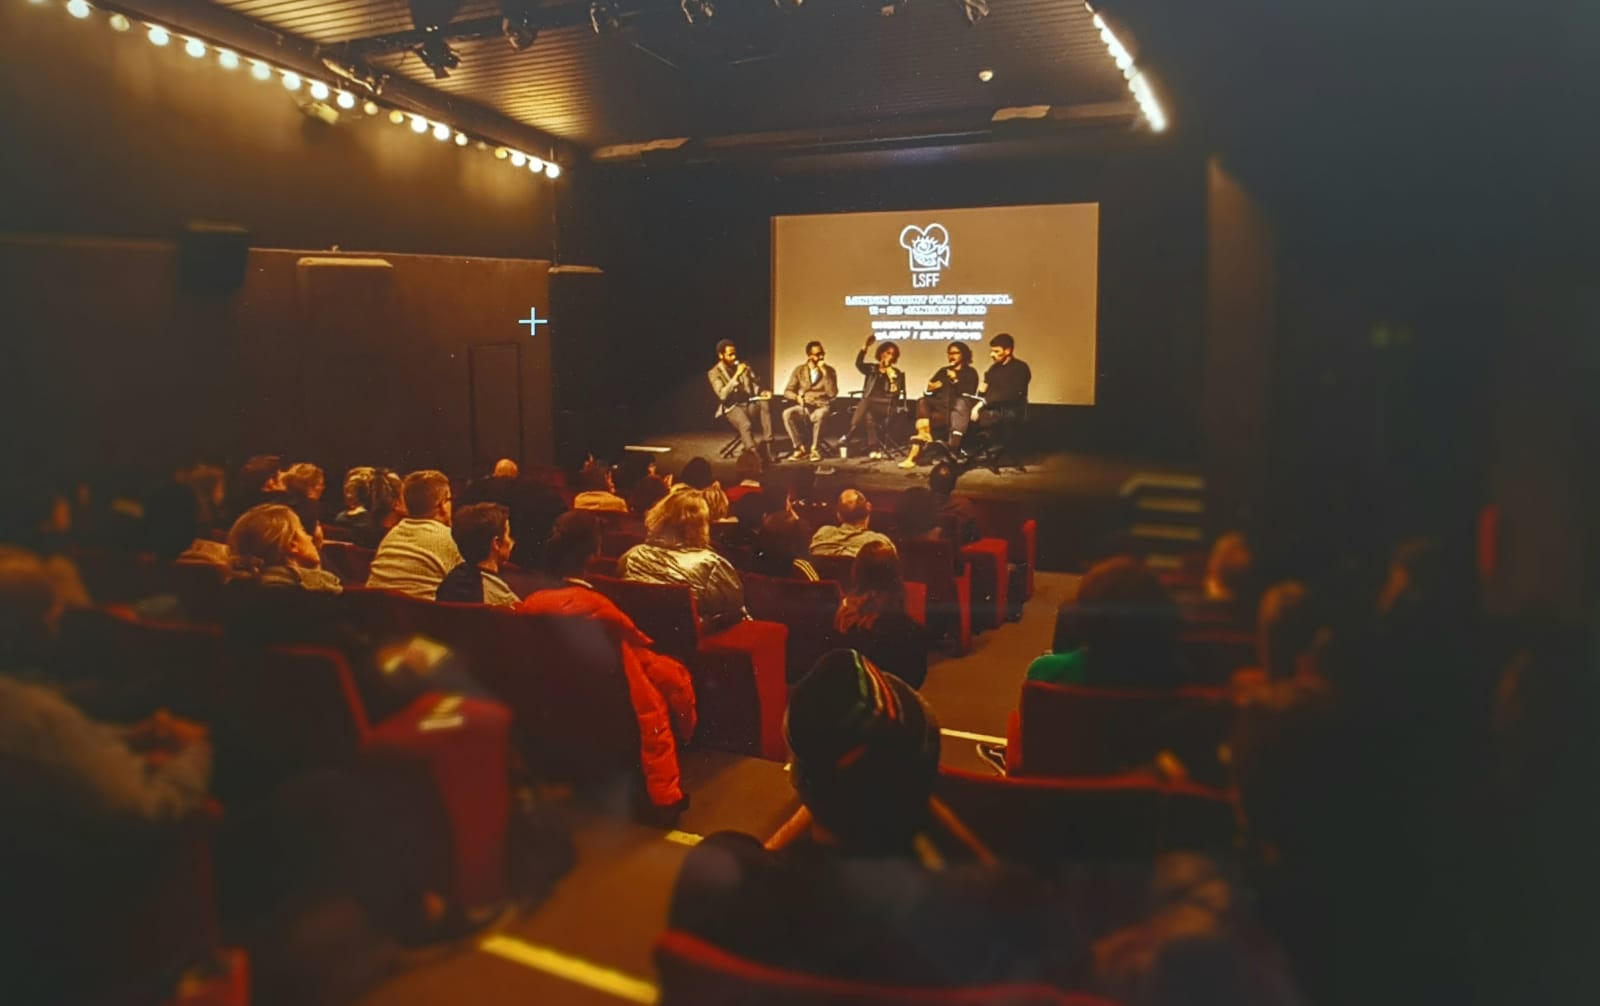 artistic director philip ilson at london short film festival in london on stage